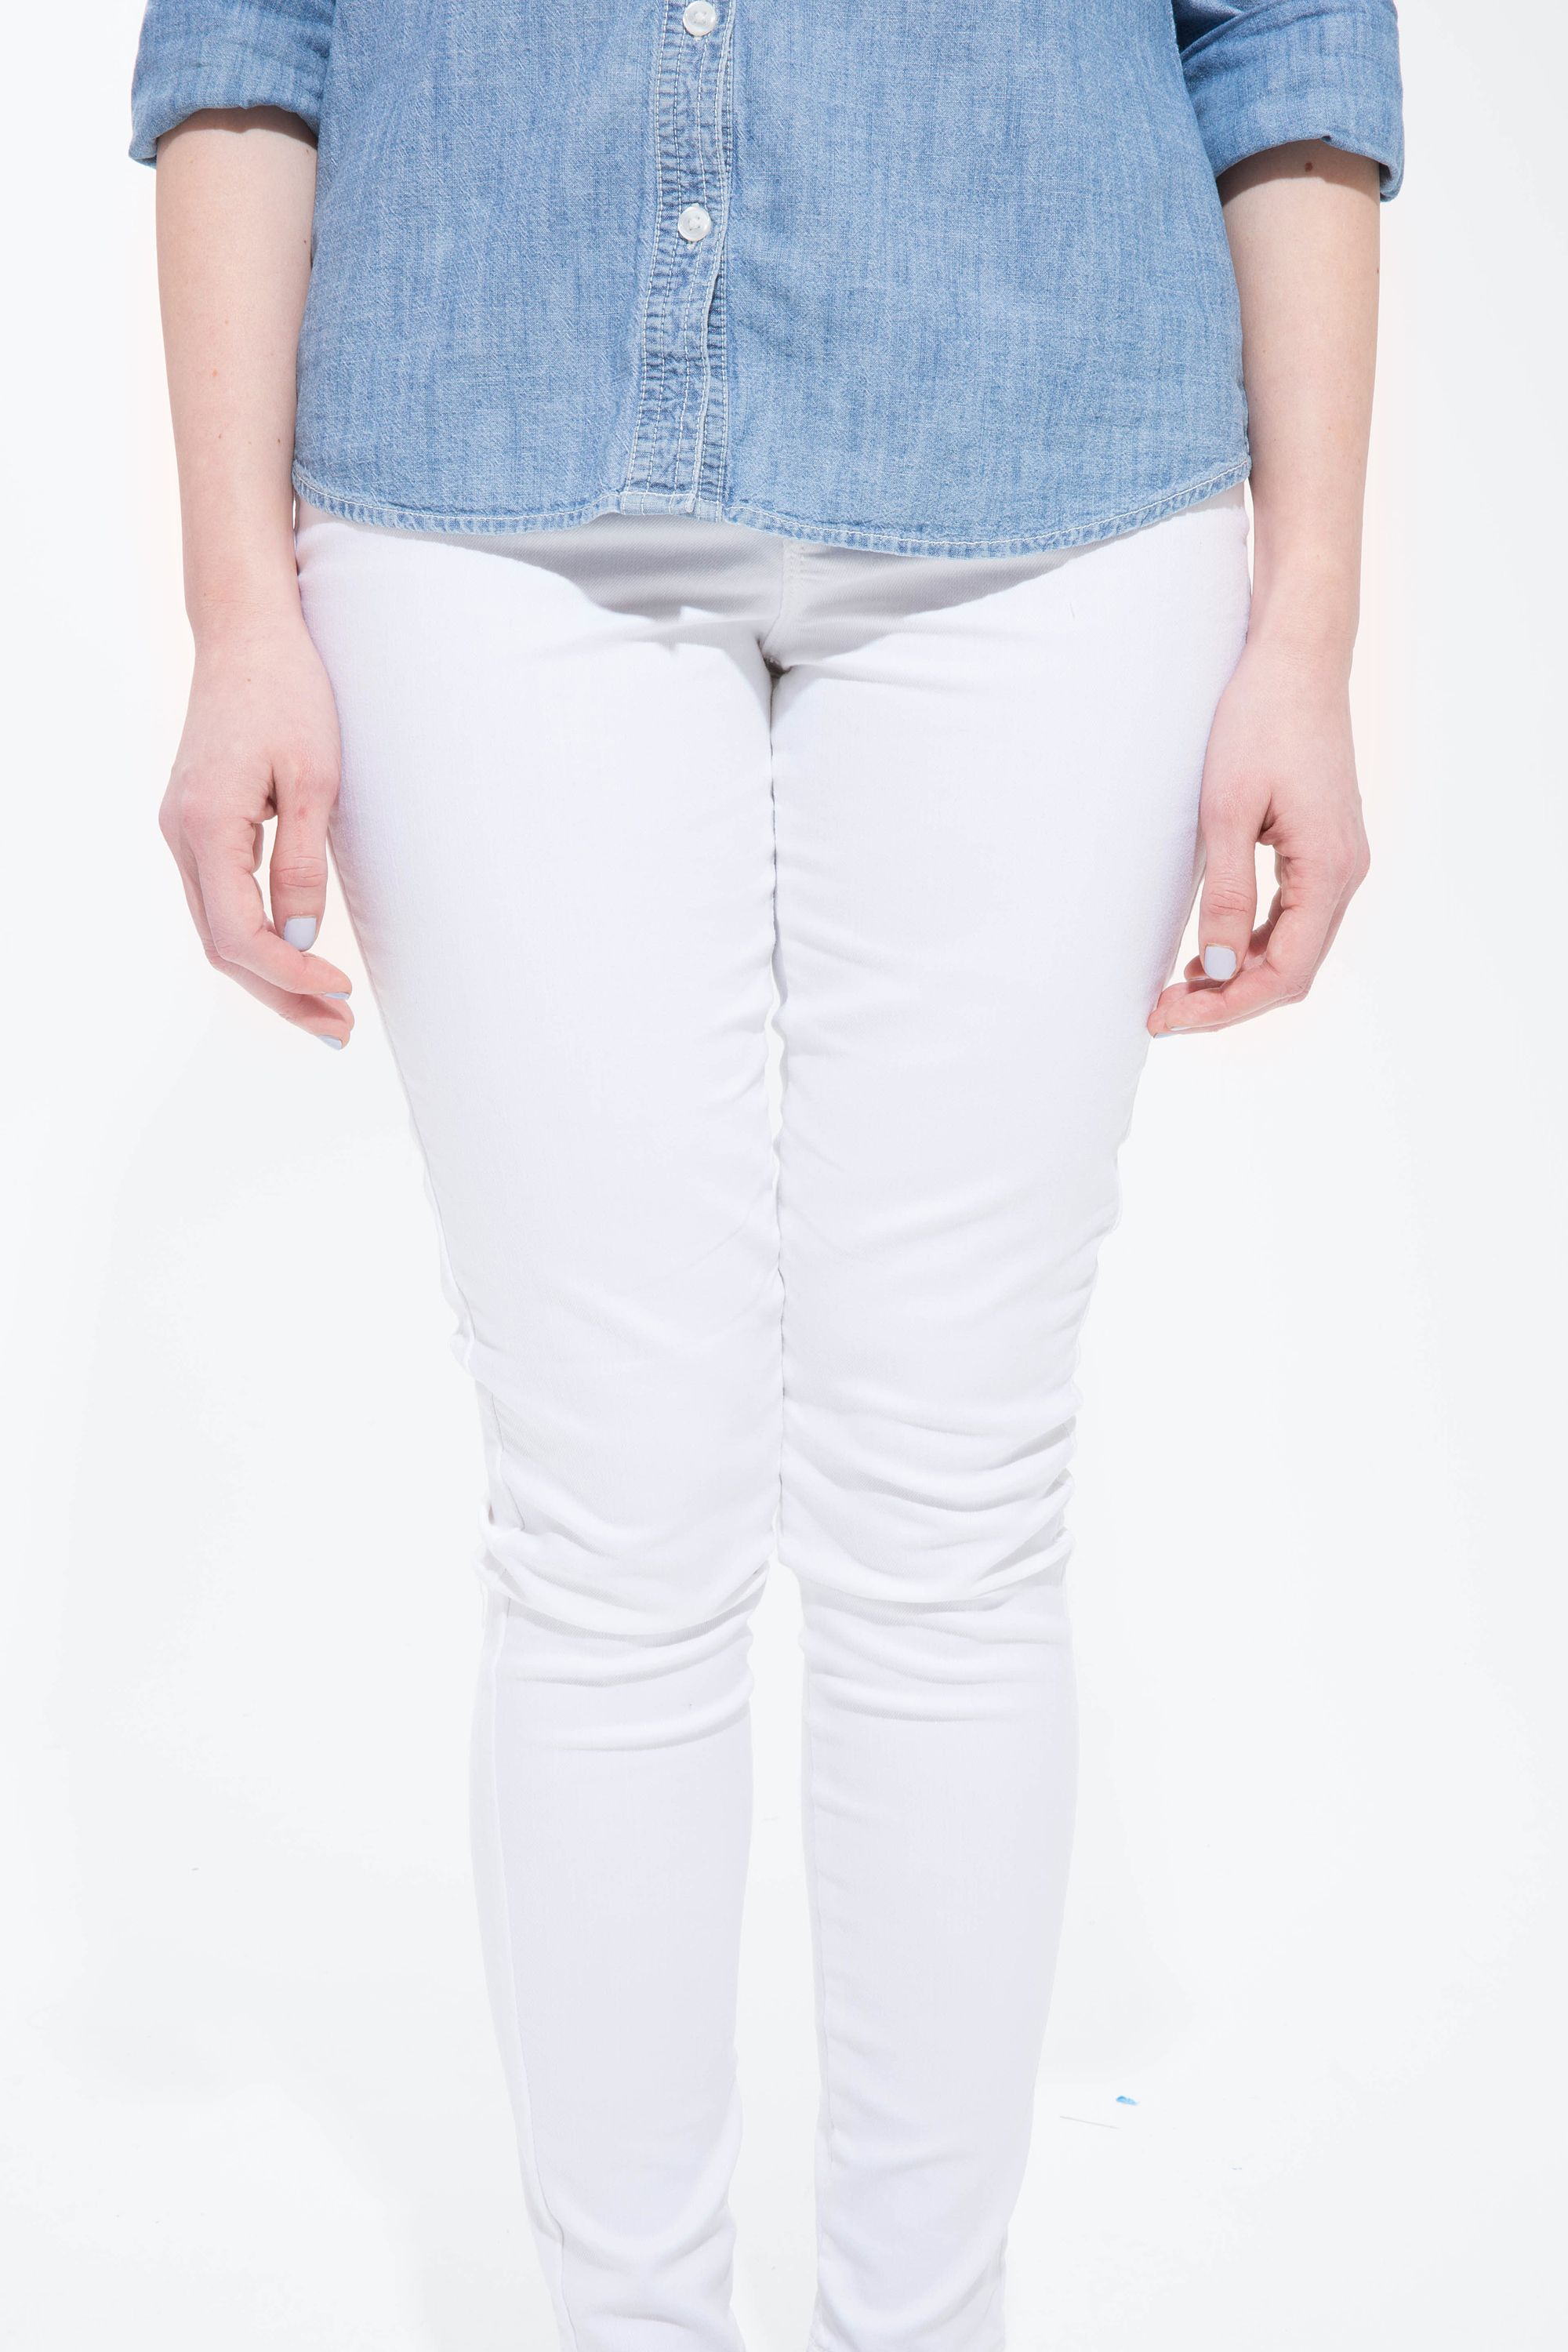 Here's What Happened When 1 Woman Spilled All Over Old Navy's Stain-Resistant White Jeans